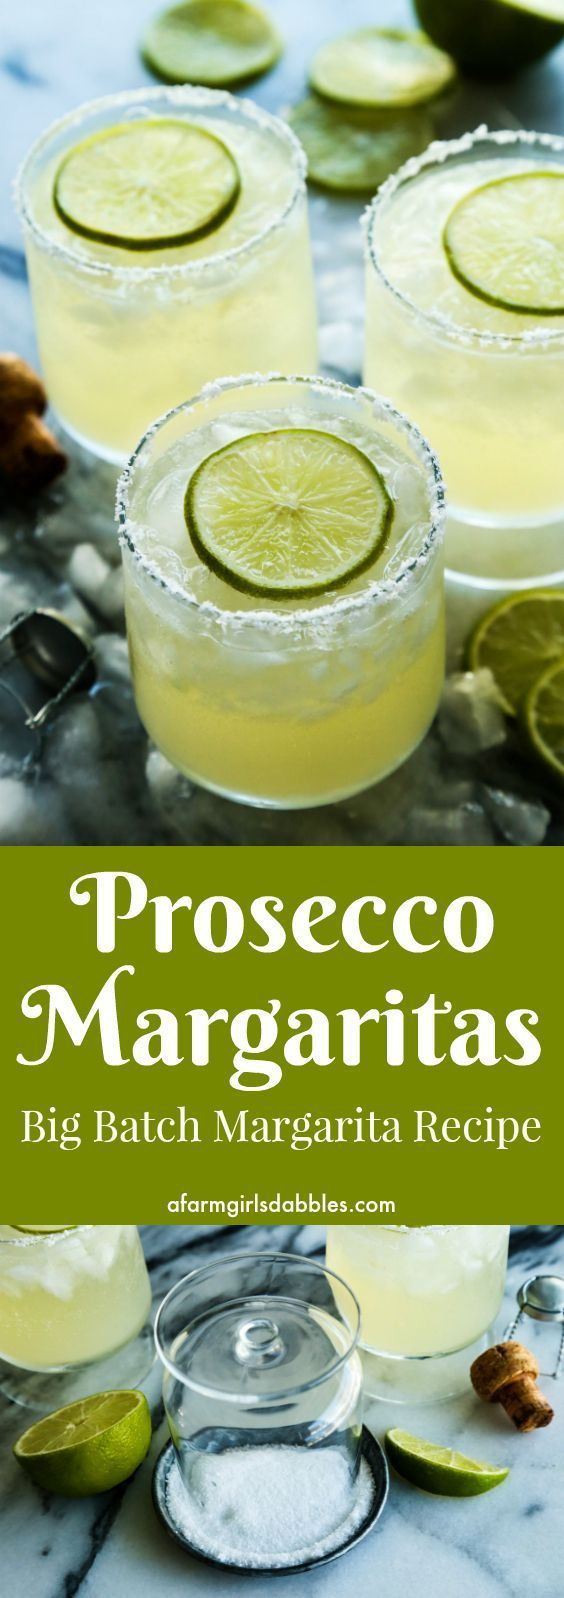 Photo of Prosecco Margaritas, a great batch cocktail recipe from afarmgirlsdabbles ……